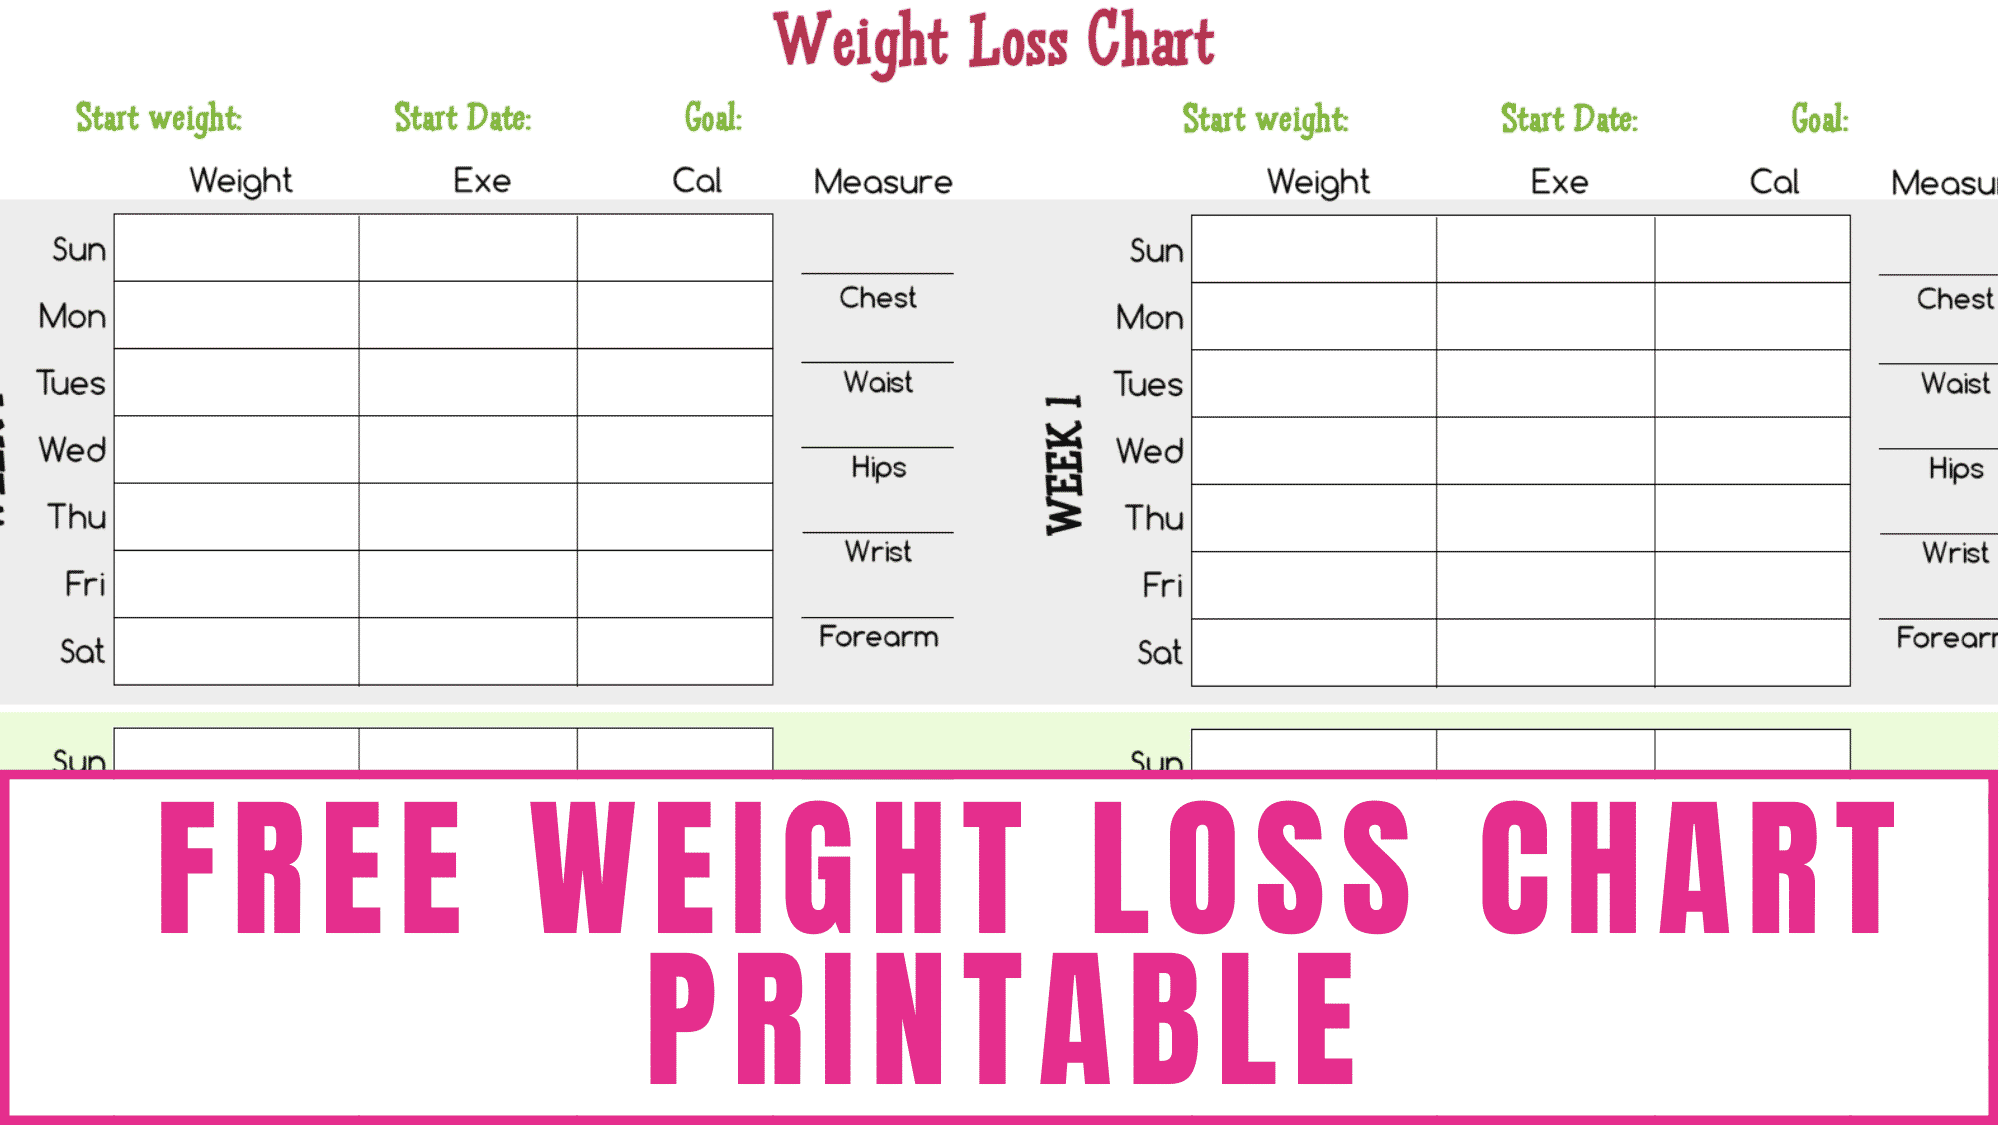 Use this free weight loss chart printable to hold yourself accountable and celebrate your successes during your fitness quest